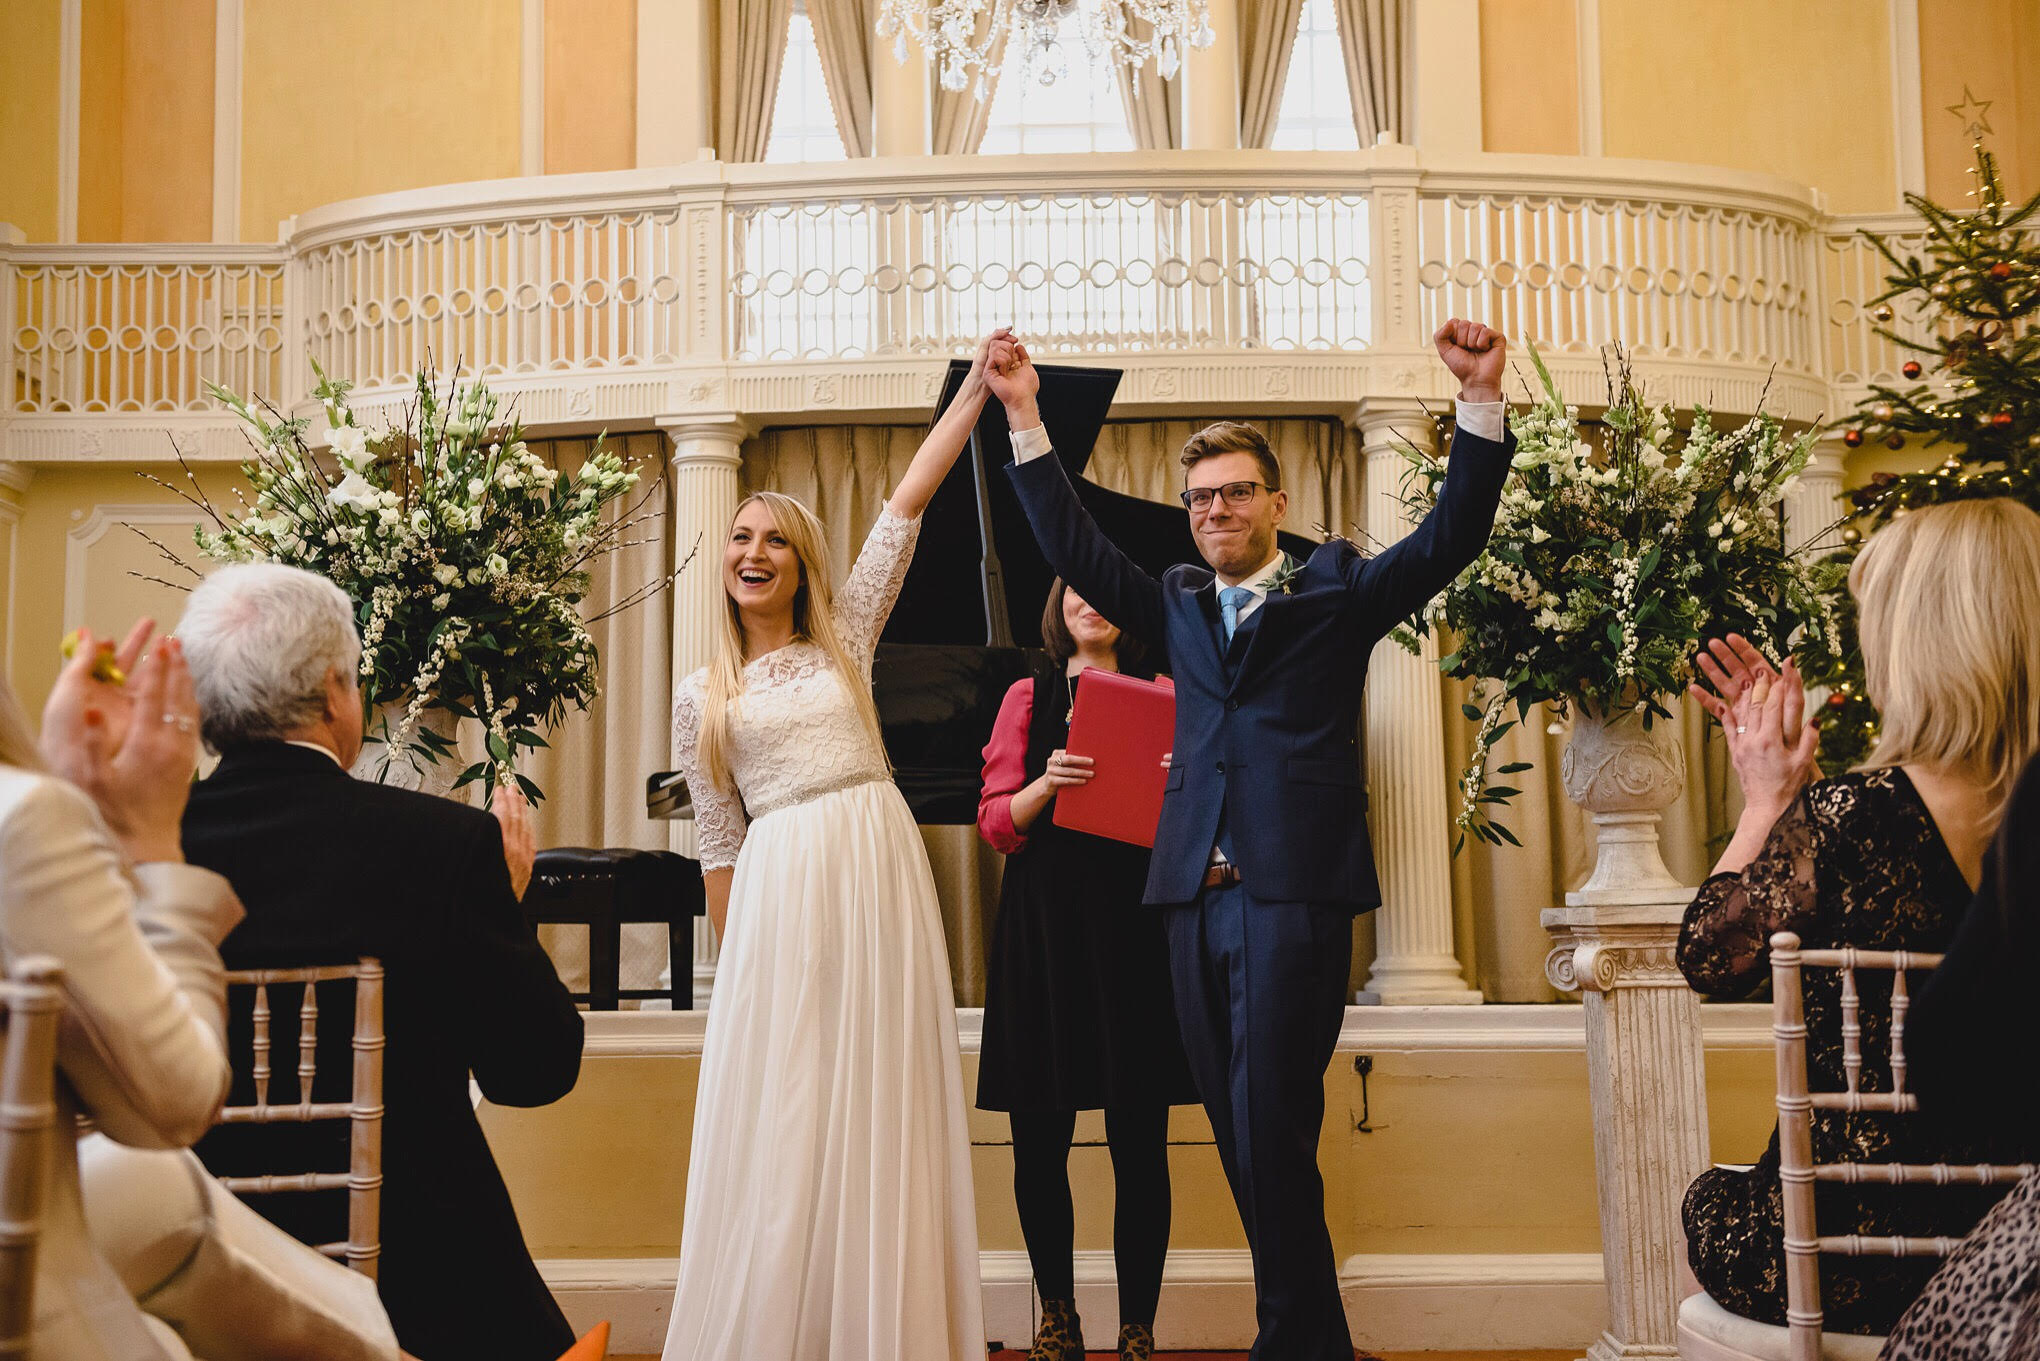 Lucy and Joe - looking very married with their triumphant power posing! Image by  Beth Moseley Photography